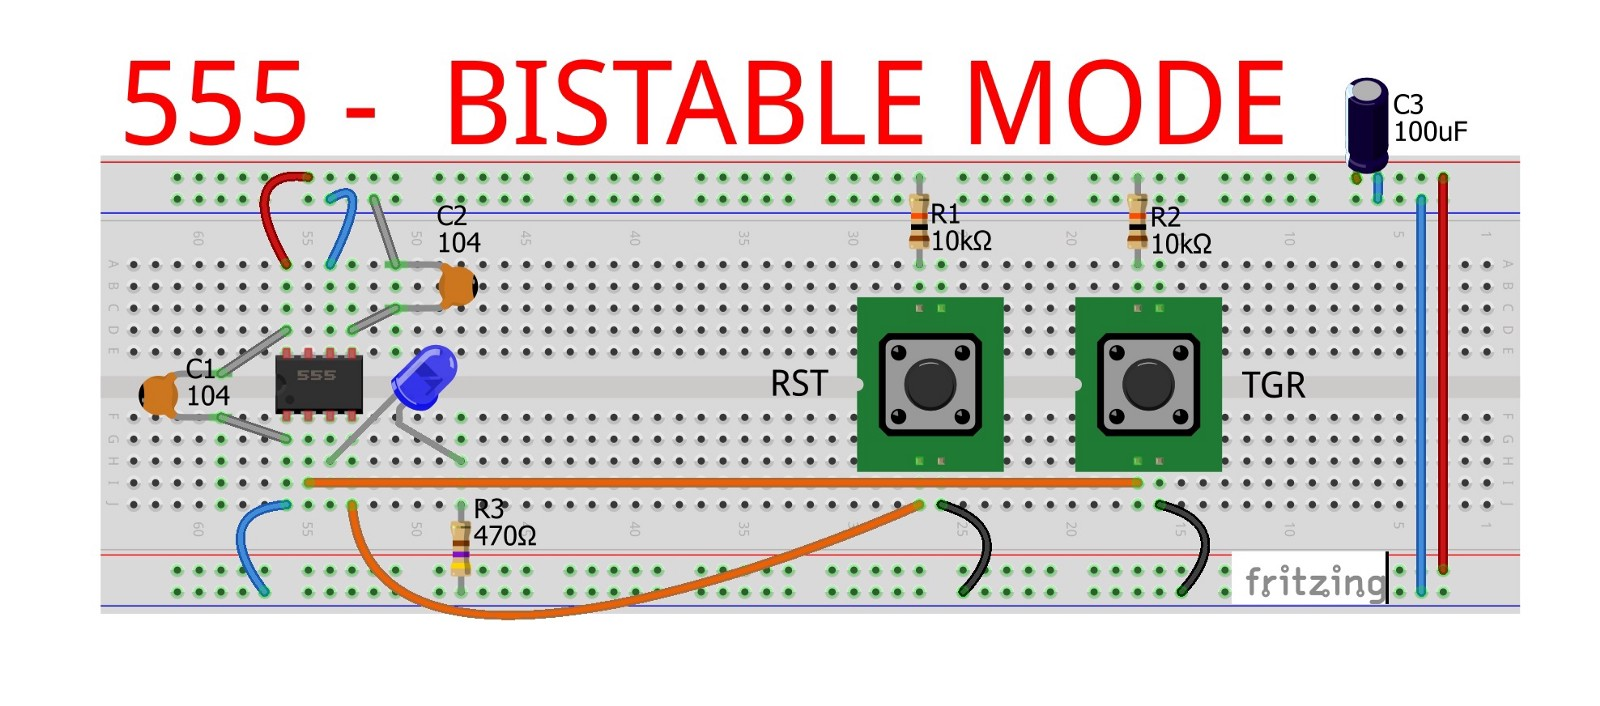 555 Ic Bistable Mode Jungletronics Medium Step 7 Timer Astable Duty Cycle Fritzing Project Are Available Too Google Drive Below